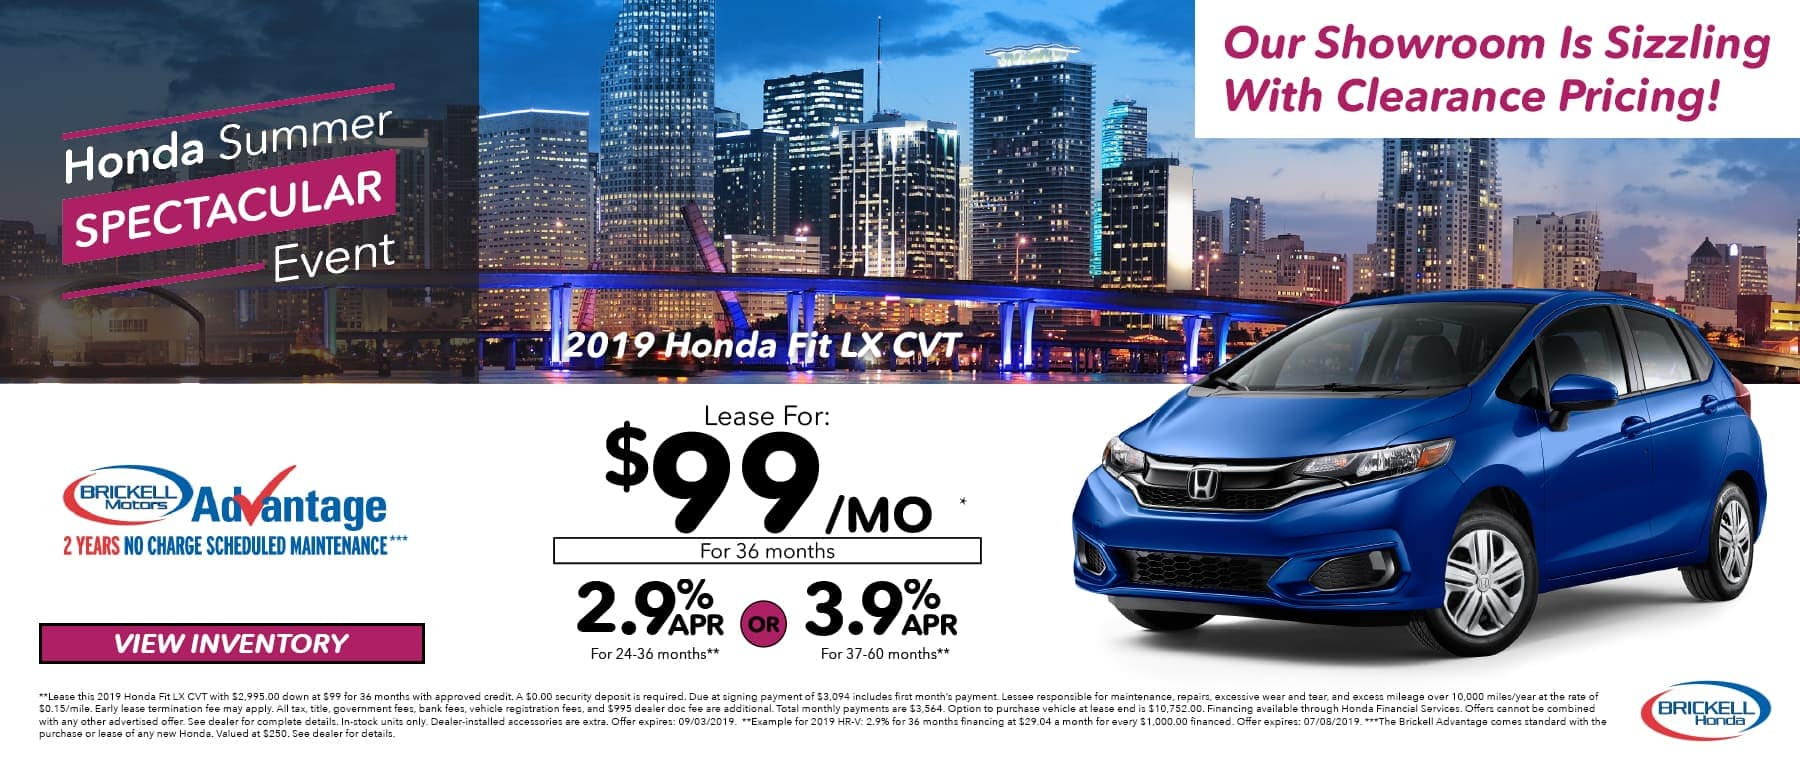 Honda Summer Event 2019 Honda Fit LX CVT